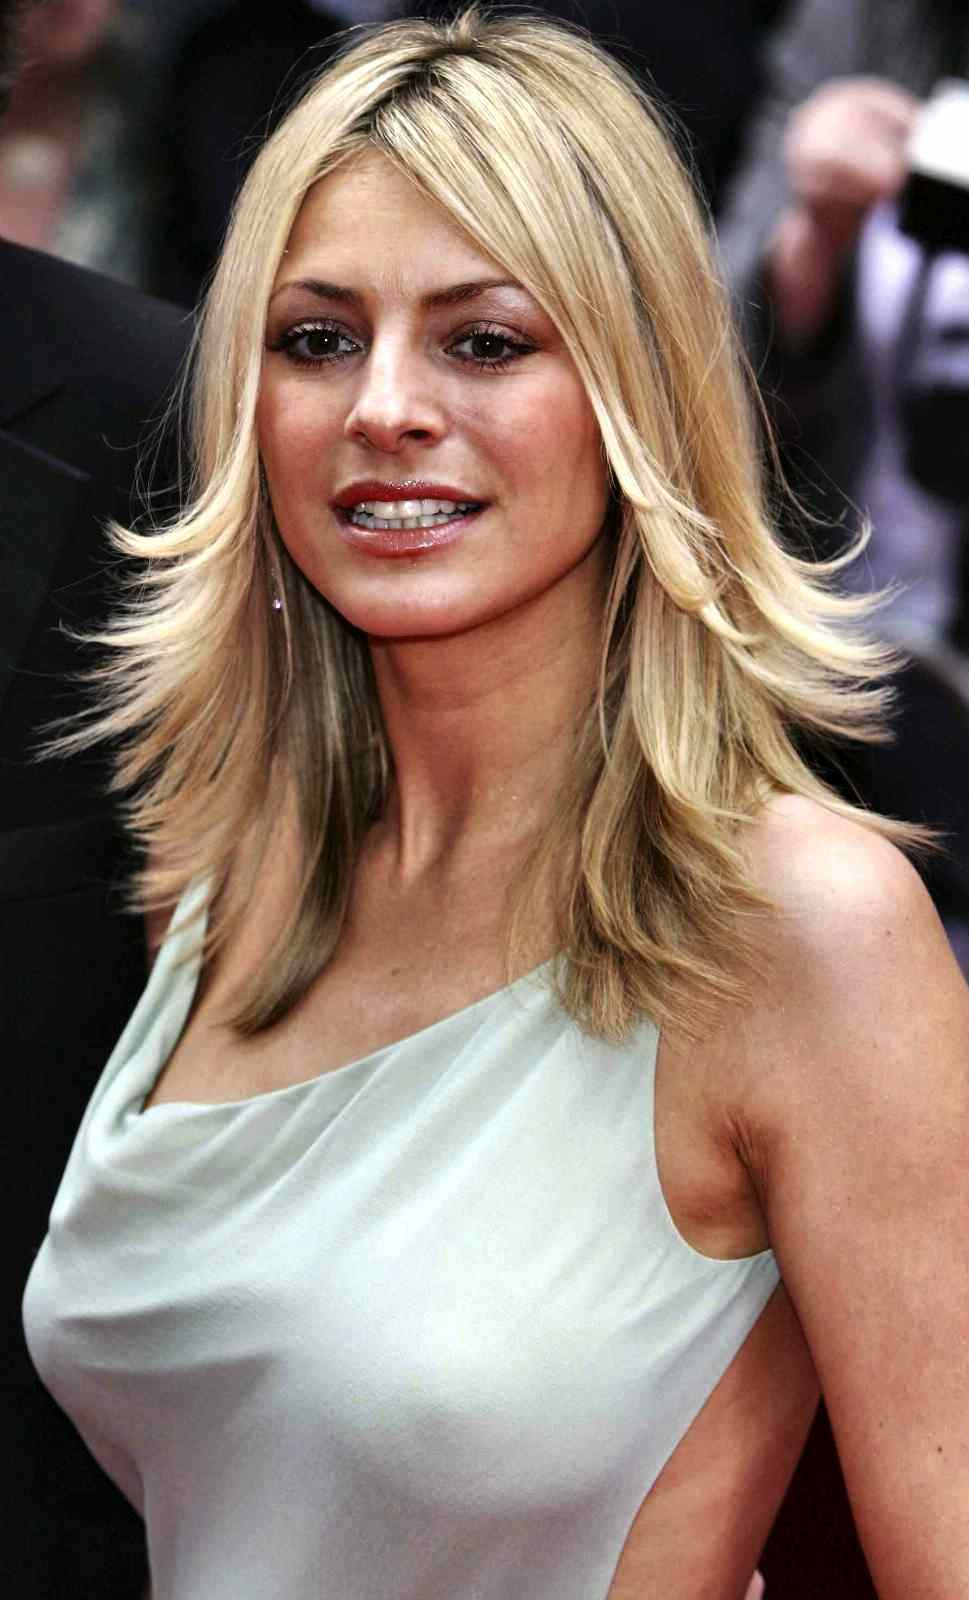 Tess Daly - see breasts under see-through dress - no bra